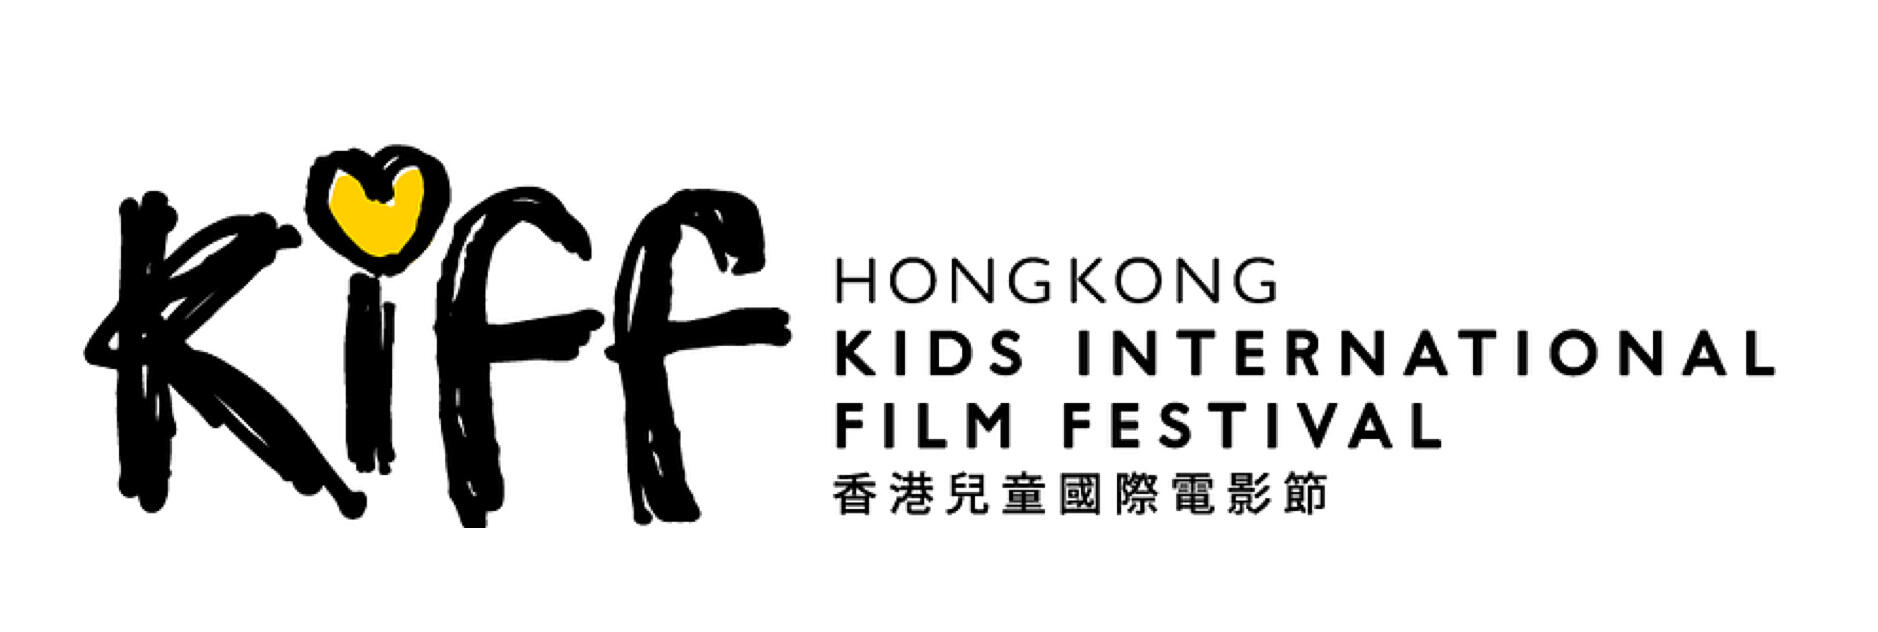 Hong Kong Kids Internation Film Festival